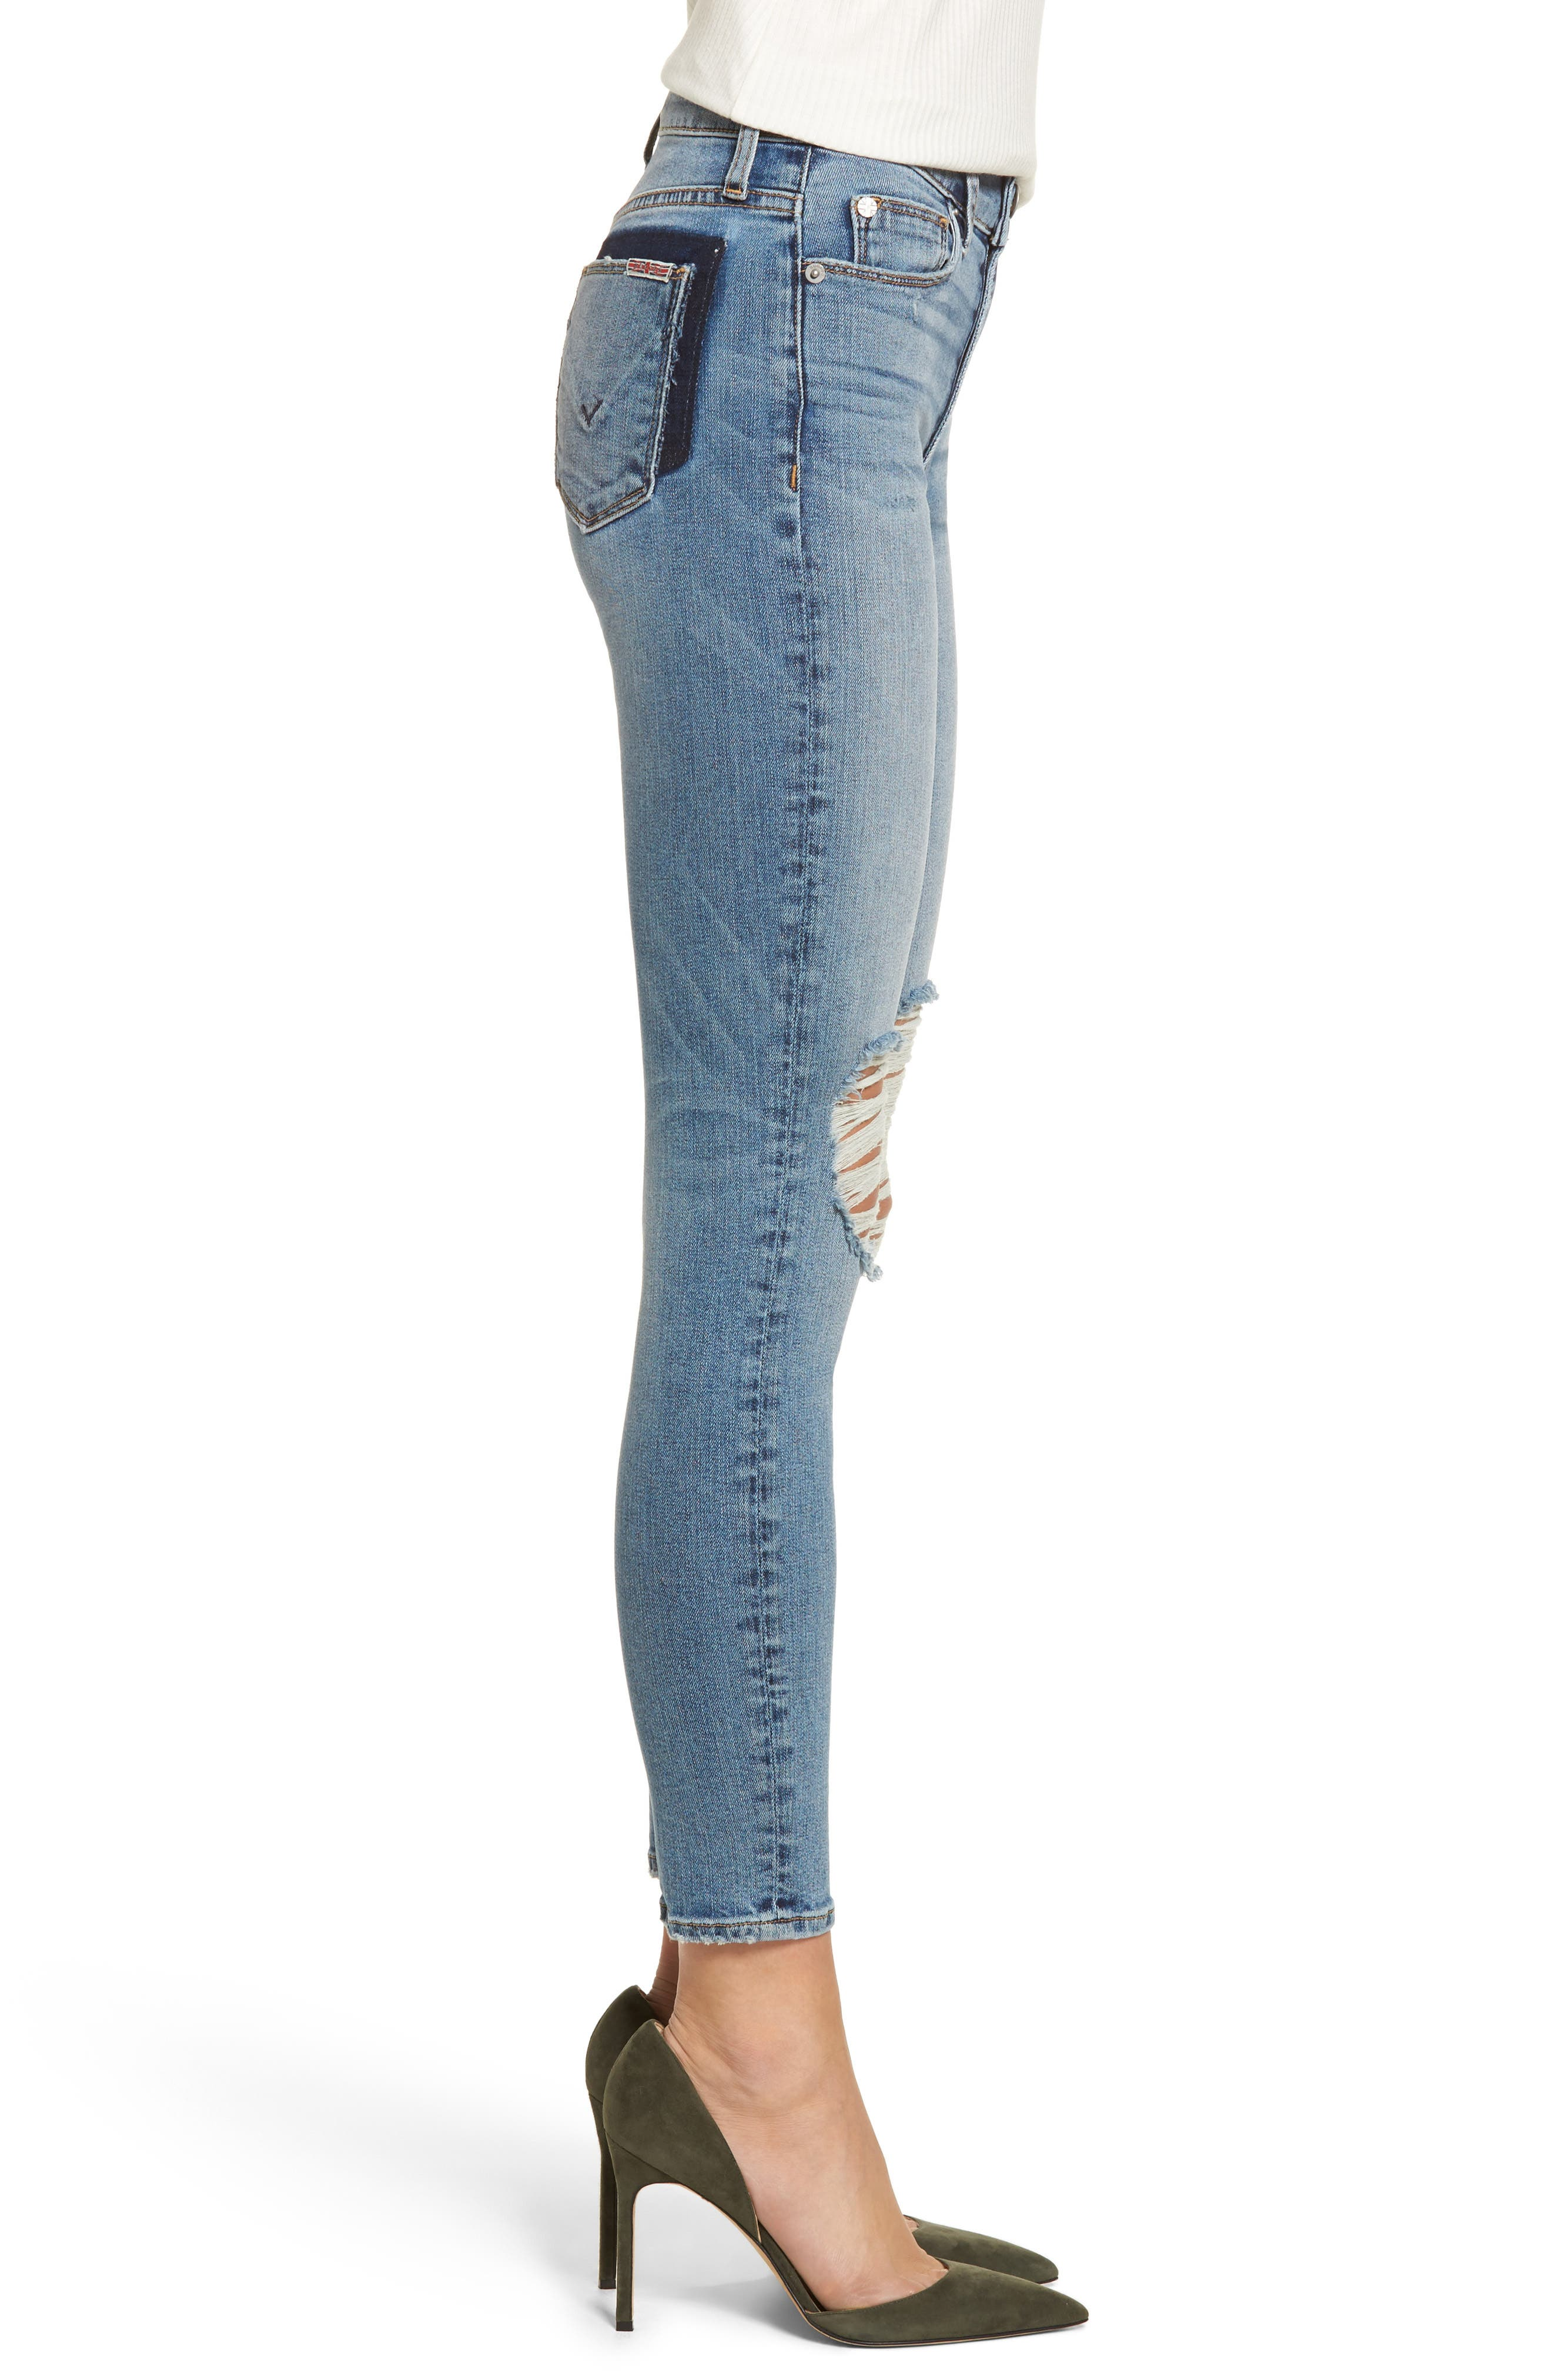 Barbara High Waist Ankle Skinny Jeans,                             Alternate thumbnail 3, color,                             Confection